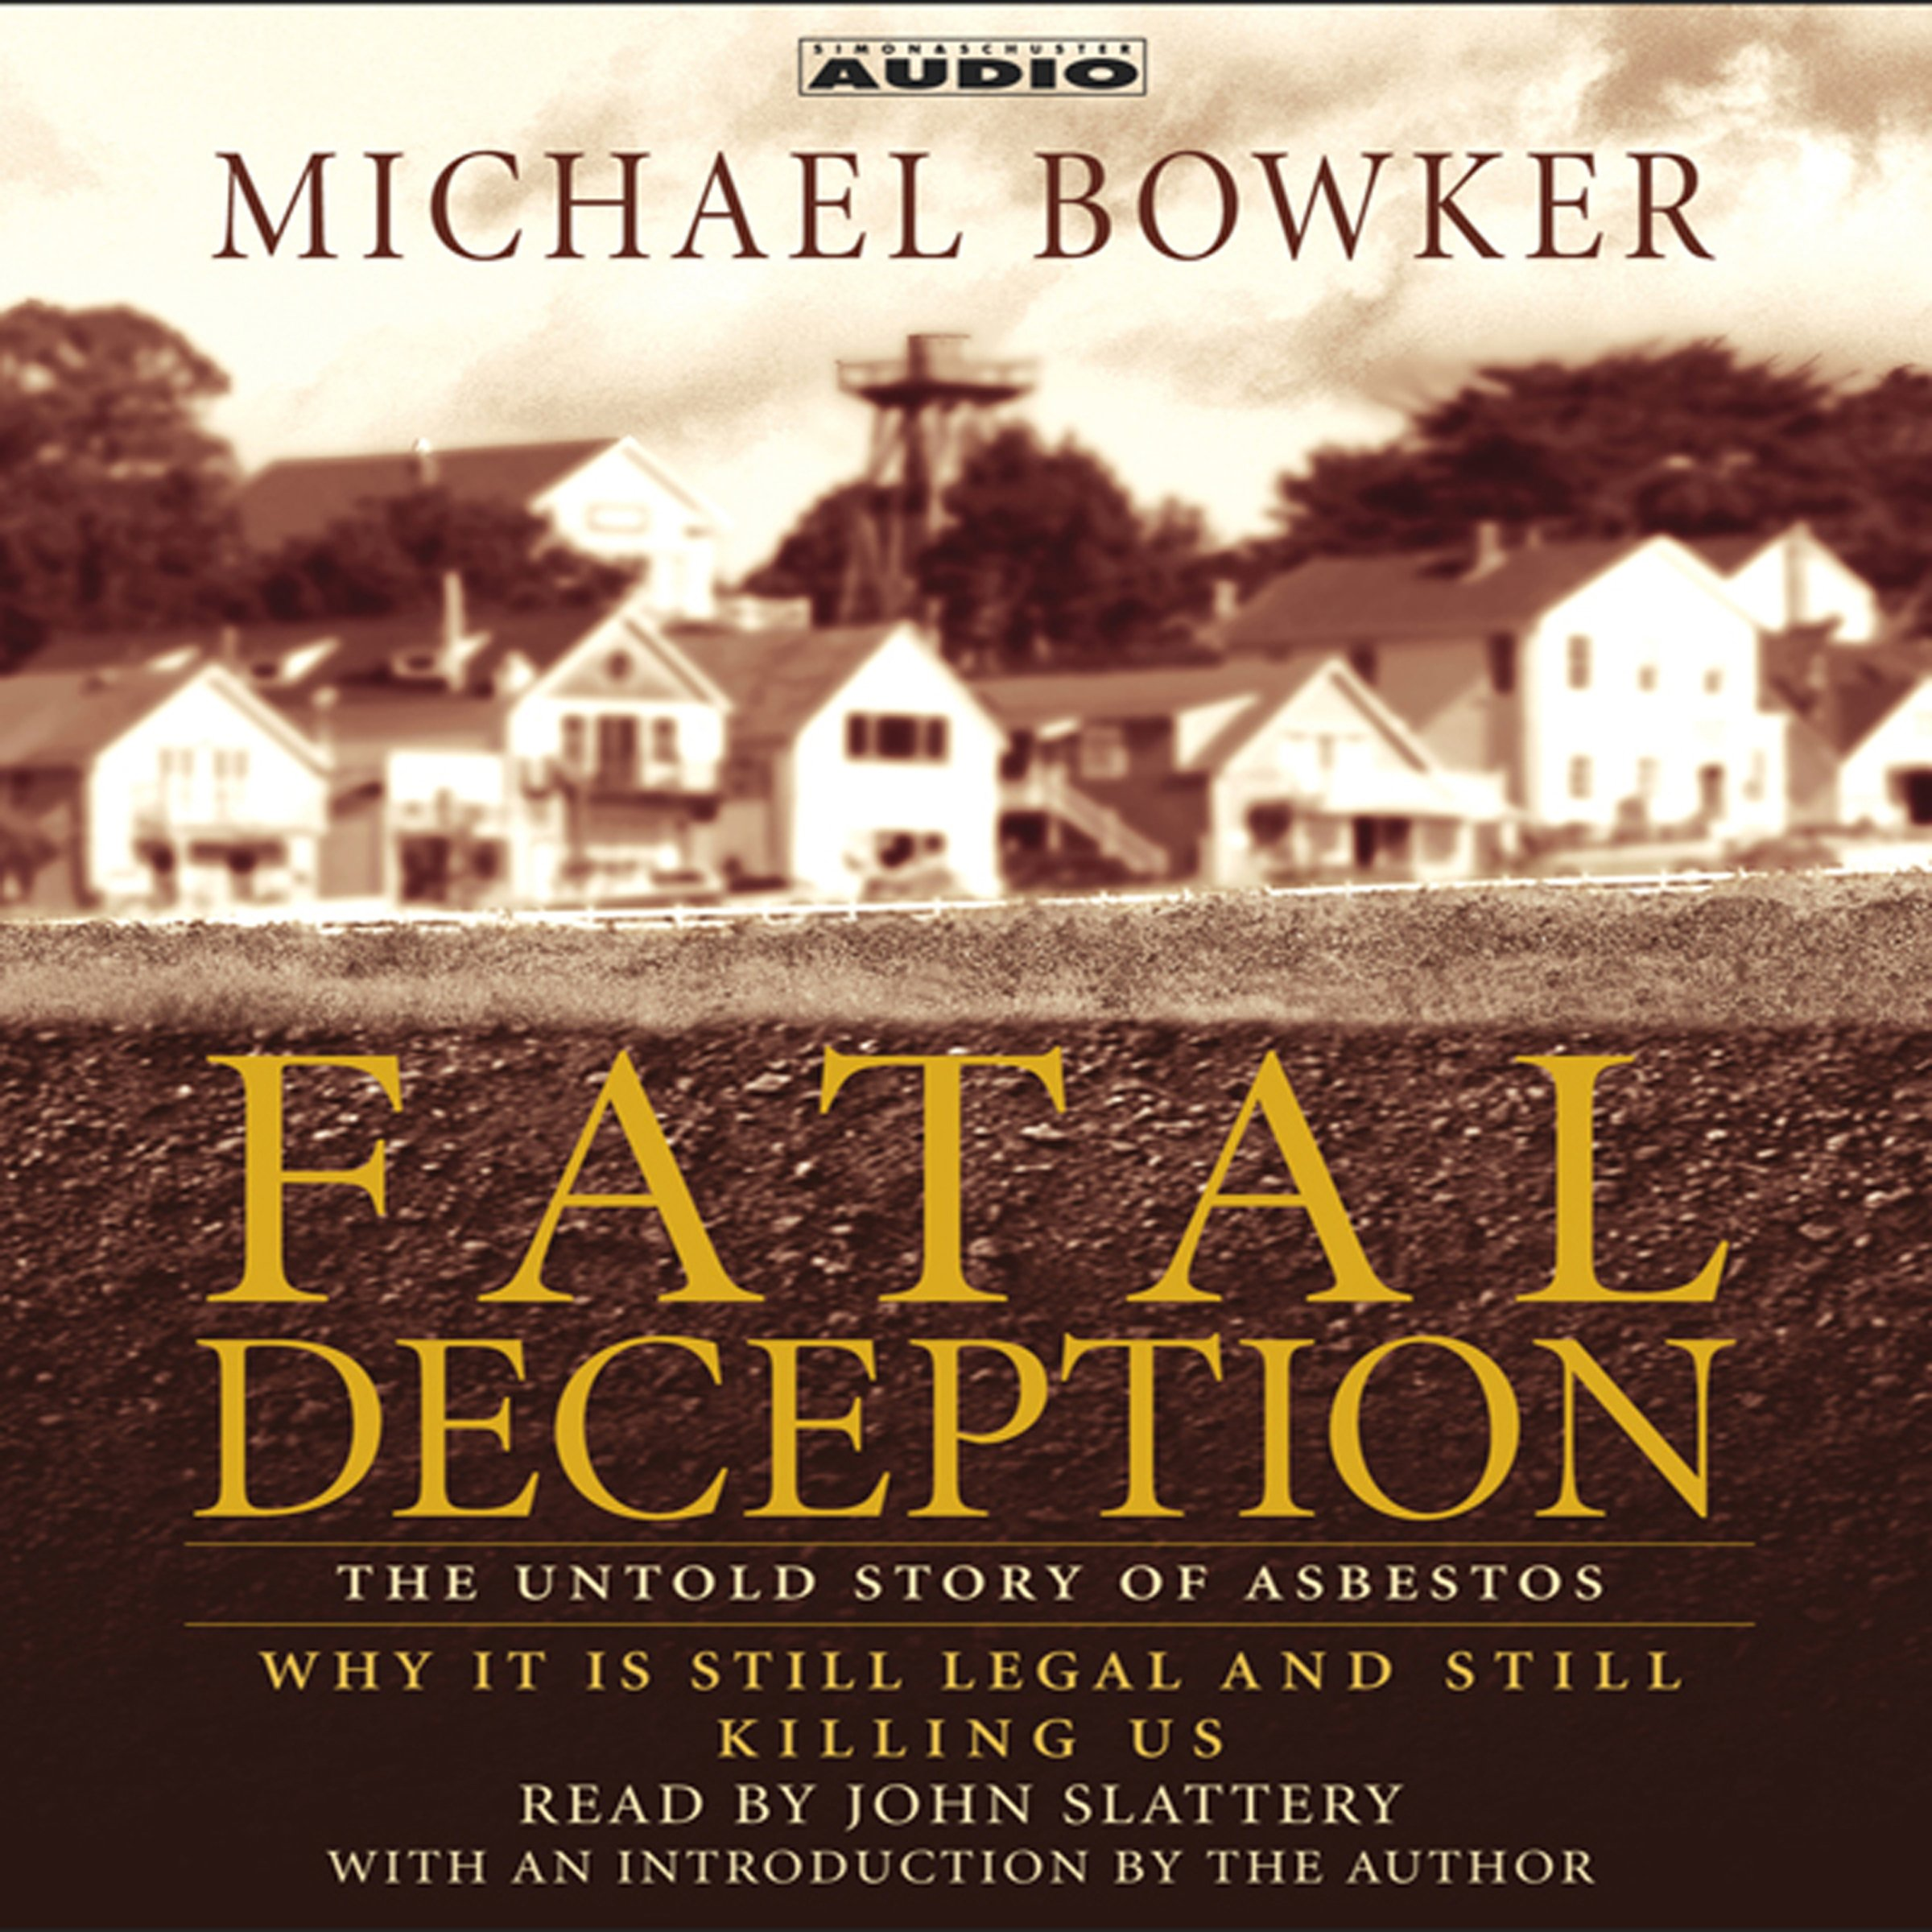 Fatal Deception: The Untold Story of Asbestos - Why It Is Still Legal and Still Killing Us